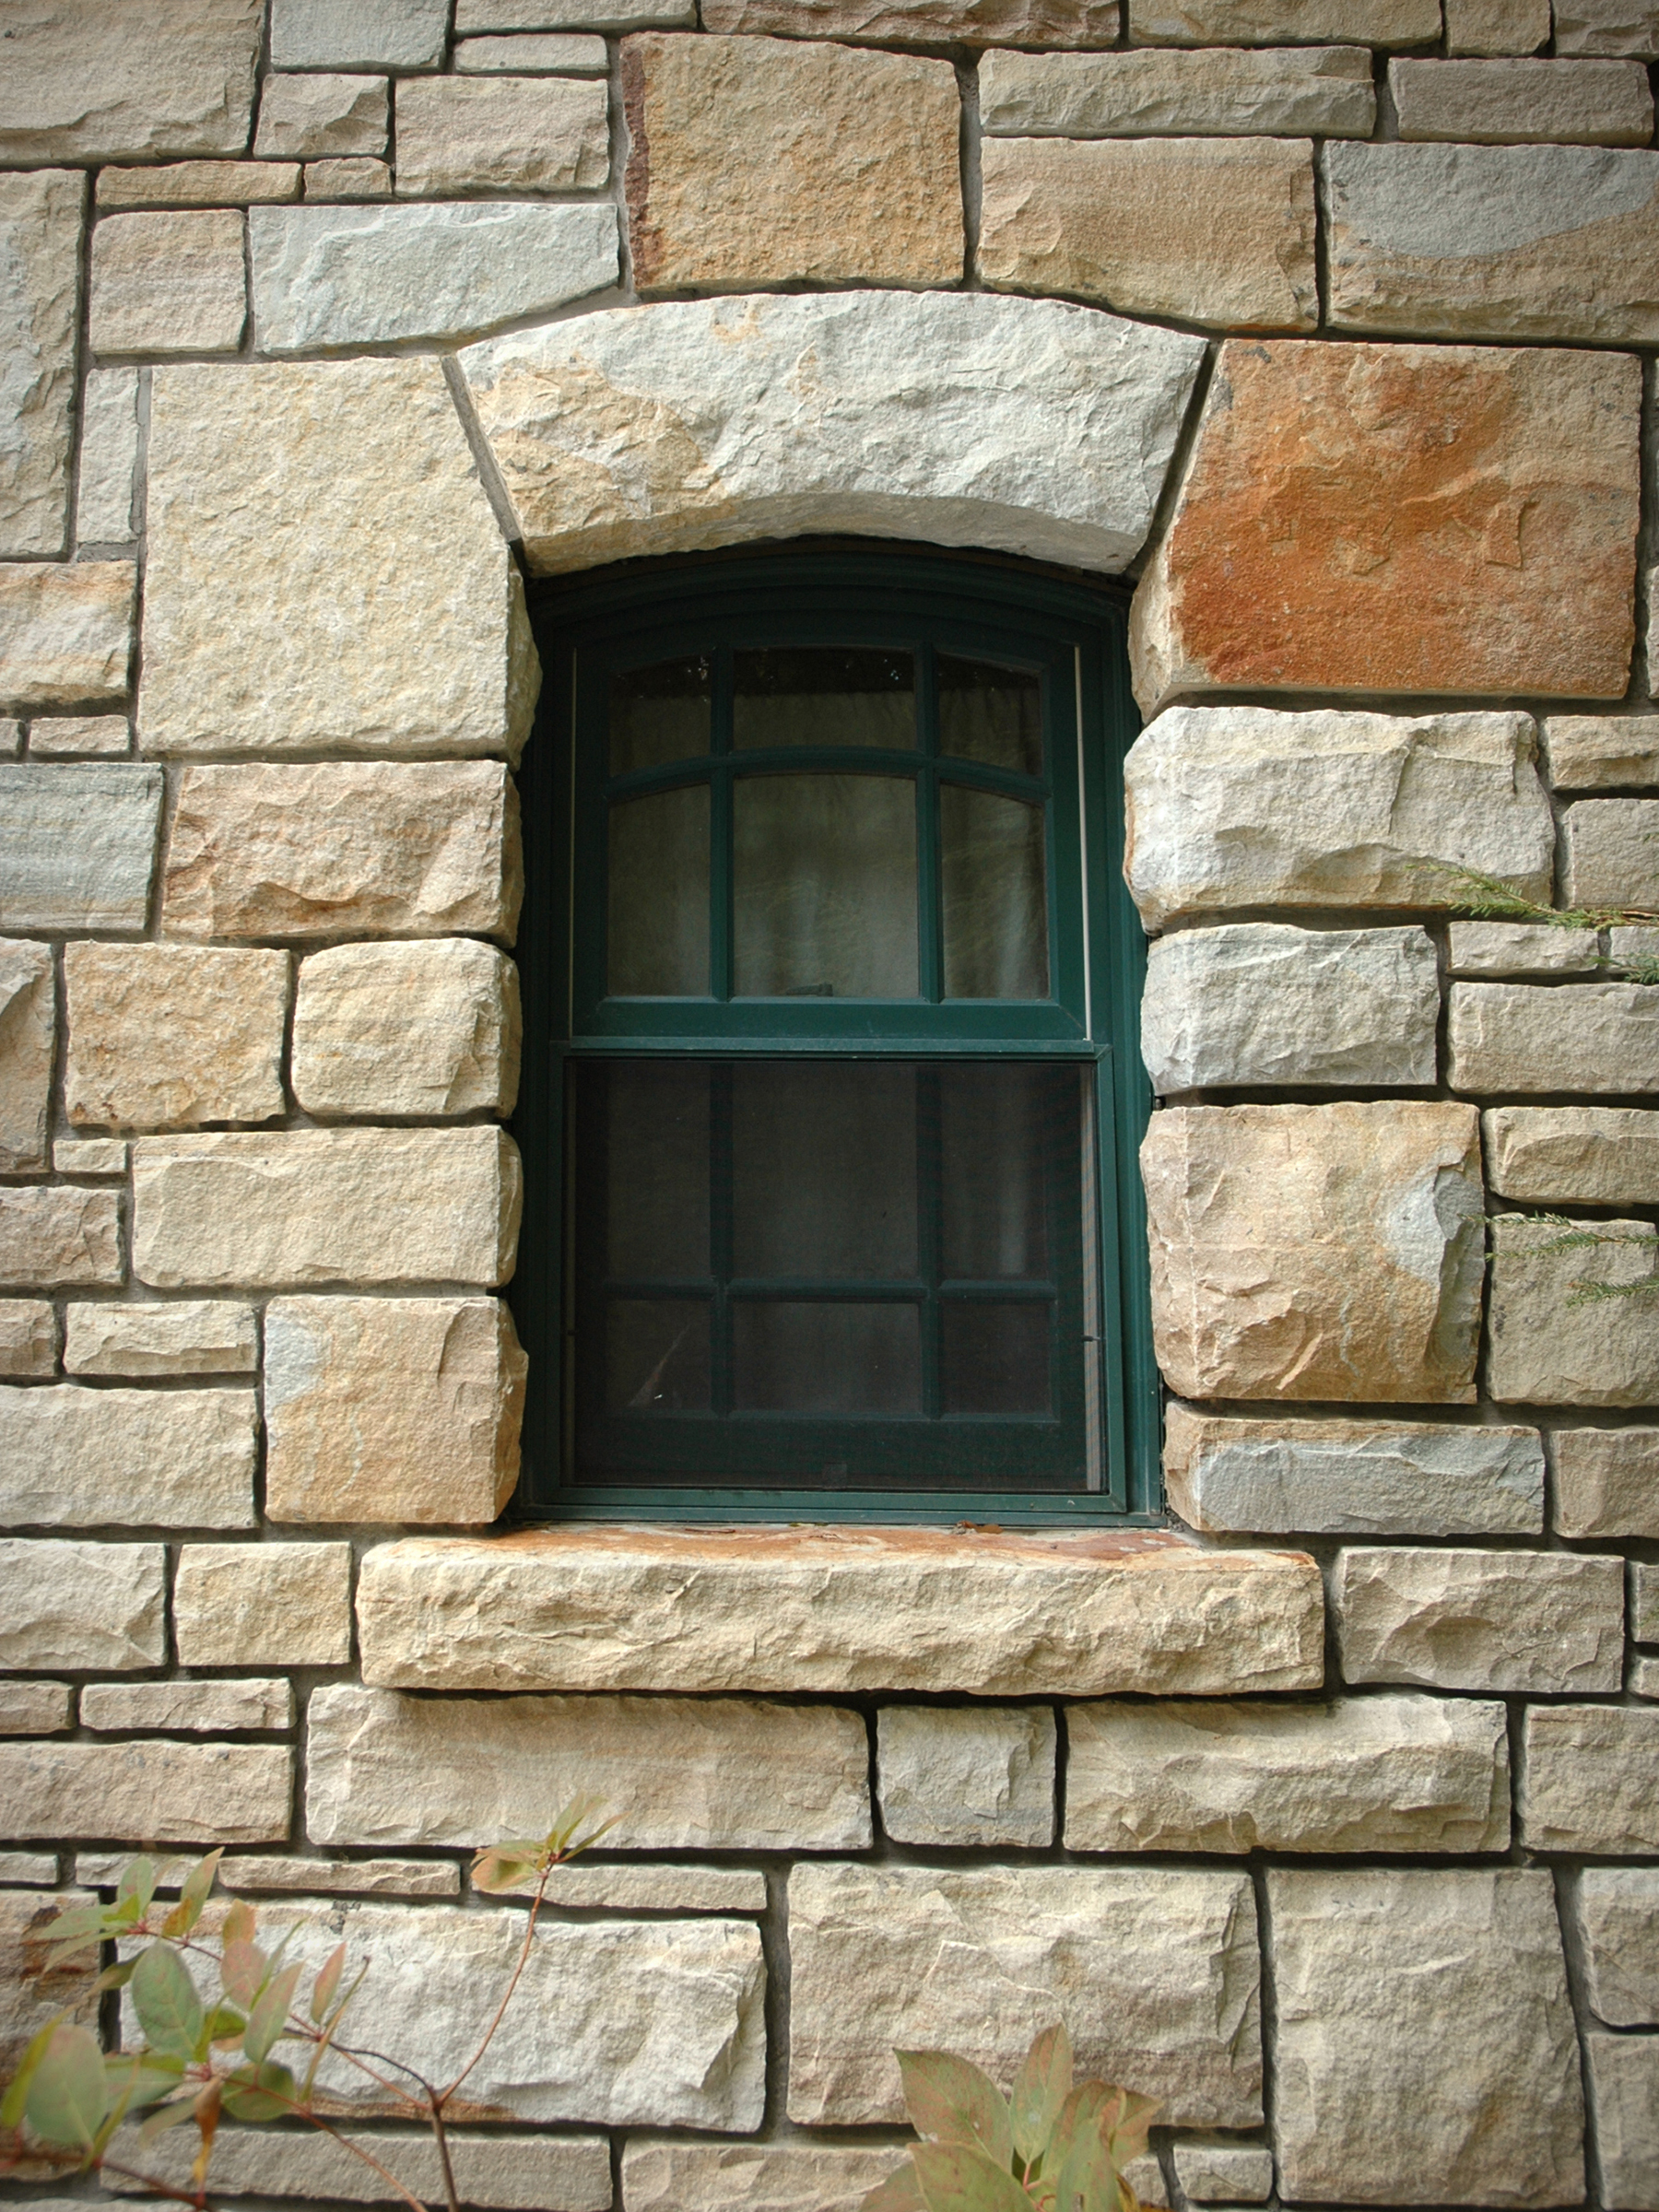 small window surrounded by stone